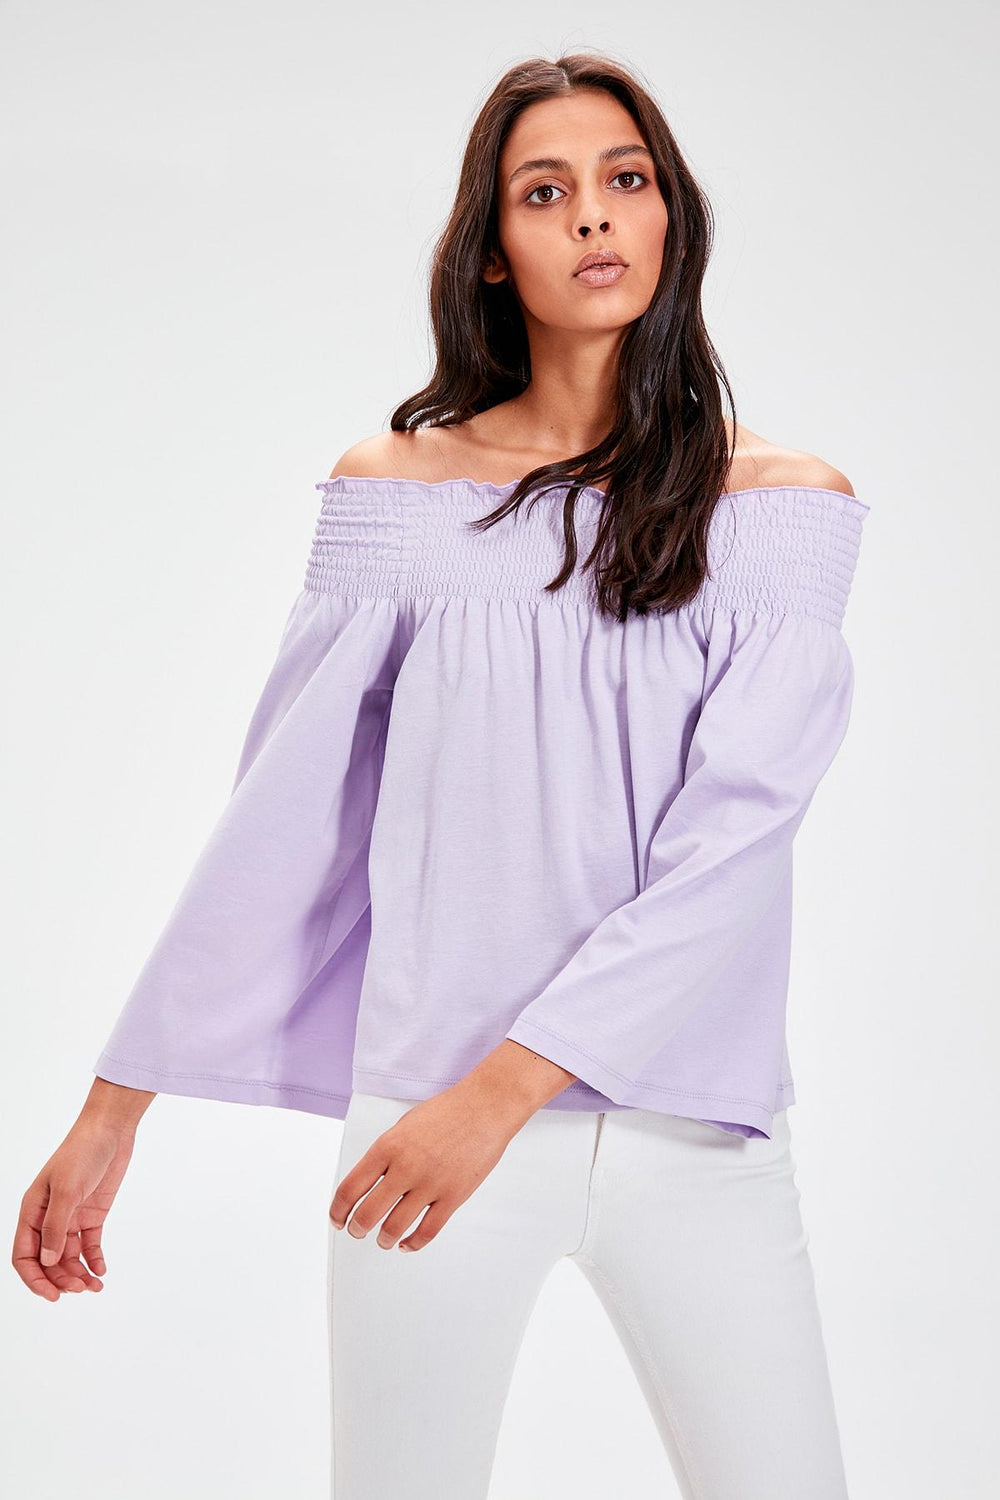 Miss Zut Miss Zut Lilac Gipeli Knitted Blouse Miss Zut &CO